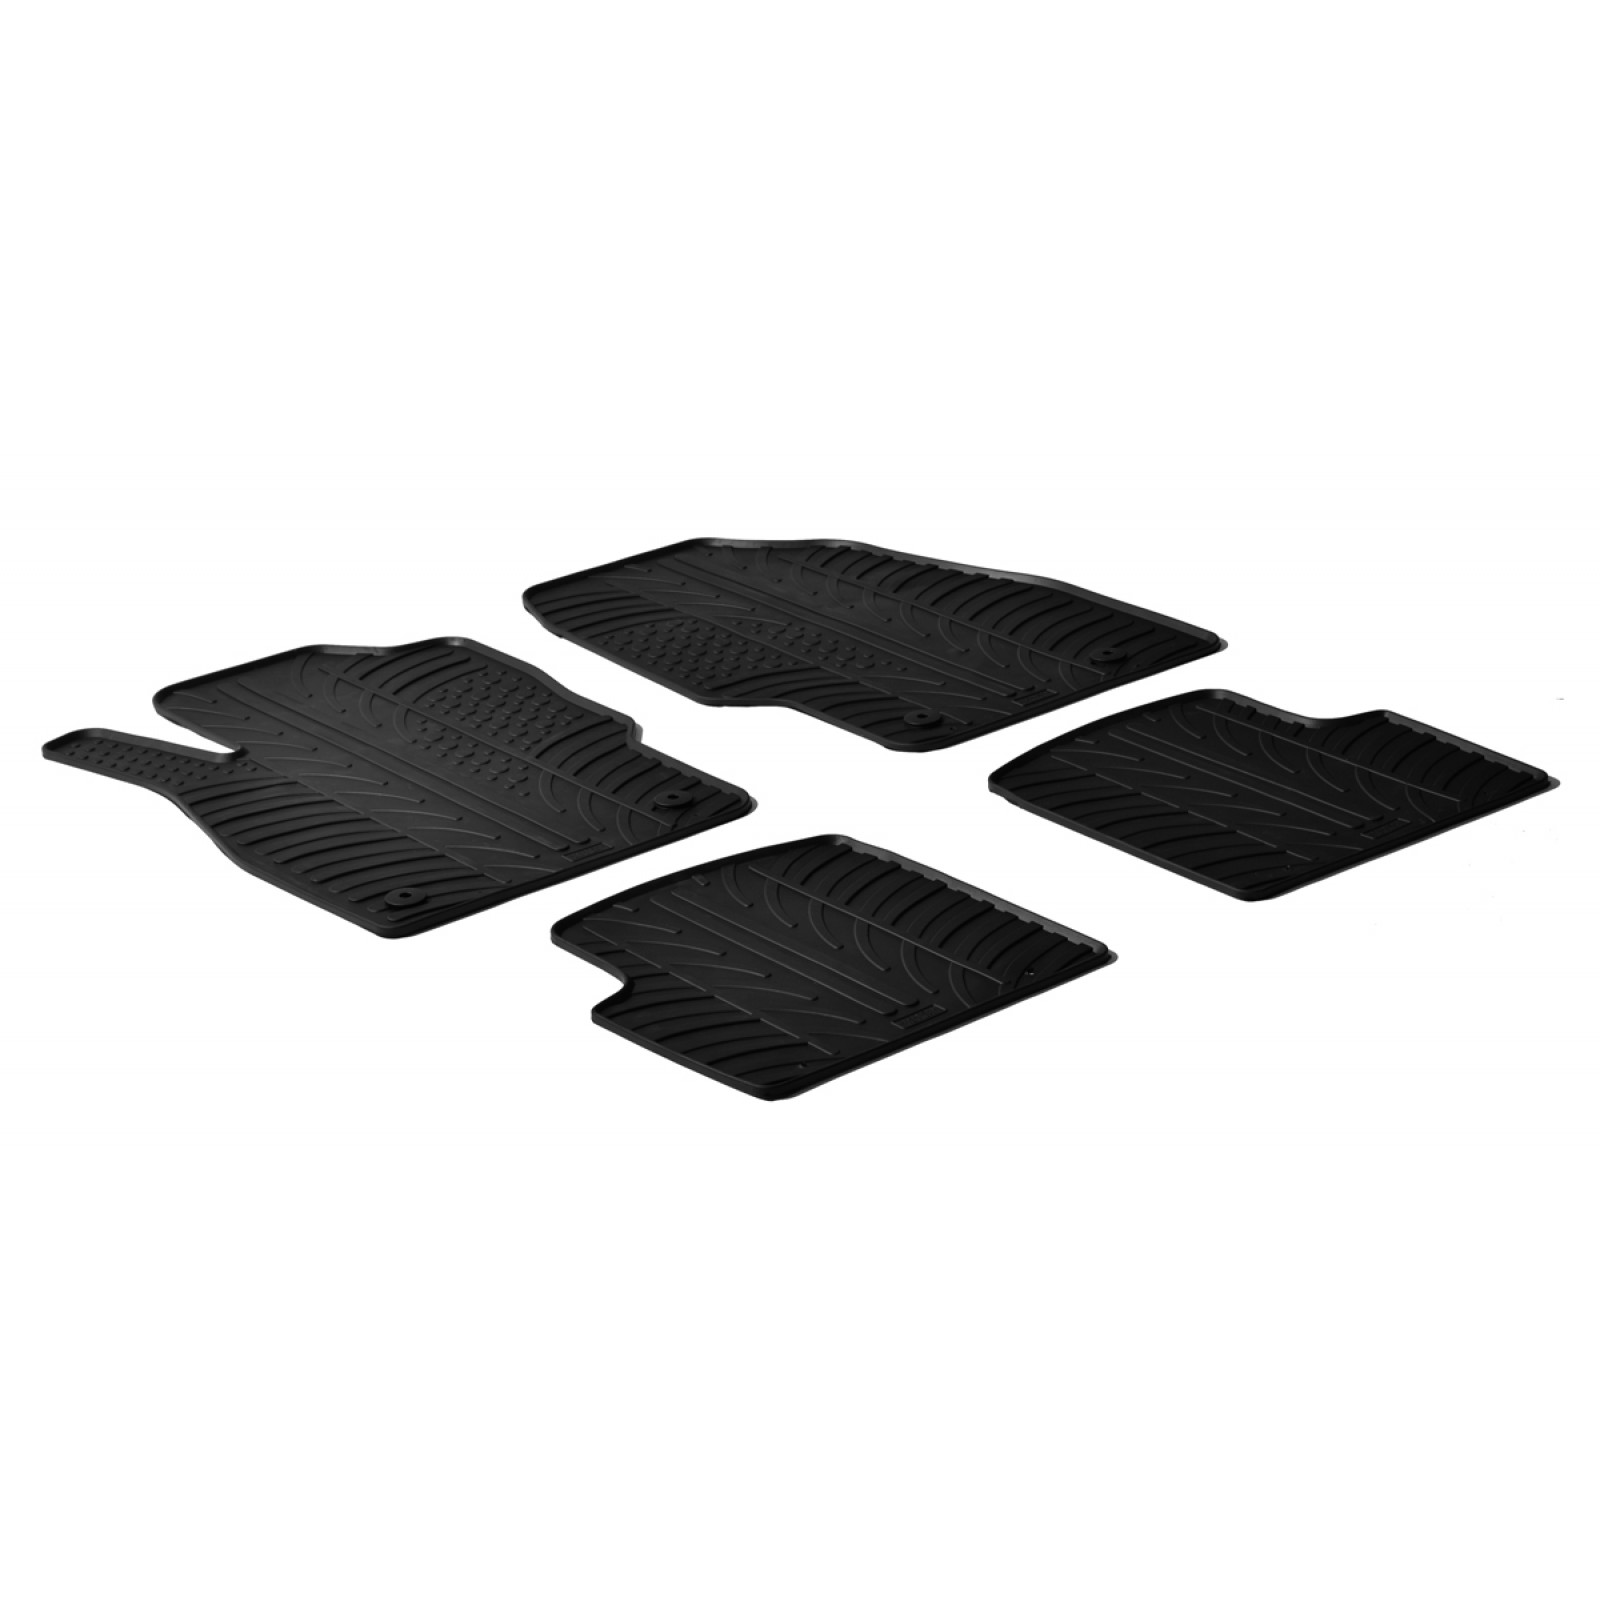 tapis en caoutchouc pour opel corsa d. Black Bedroom Furniture Sets. Home Design Ideas